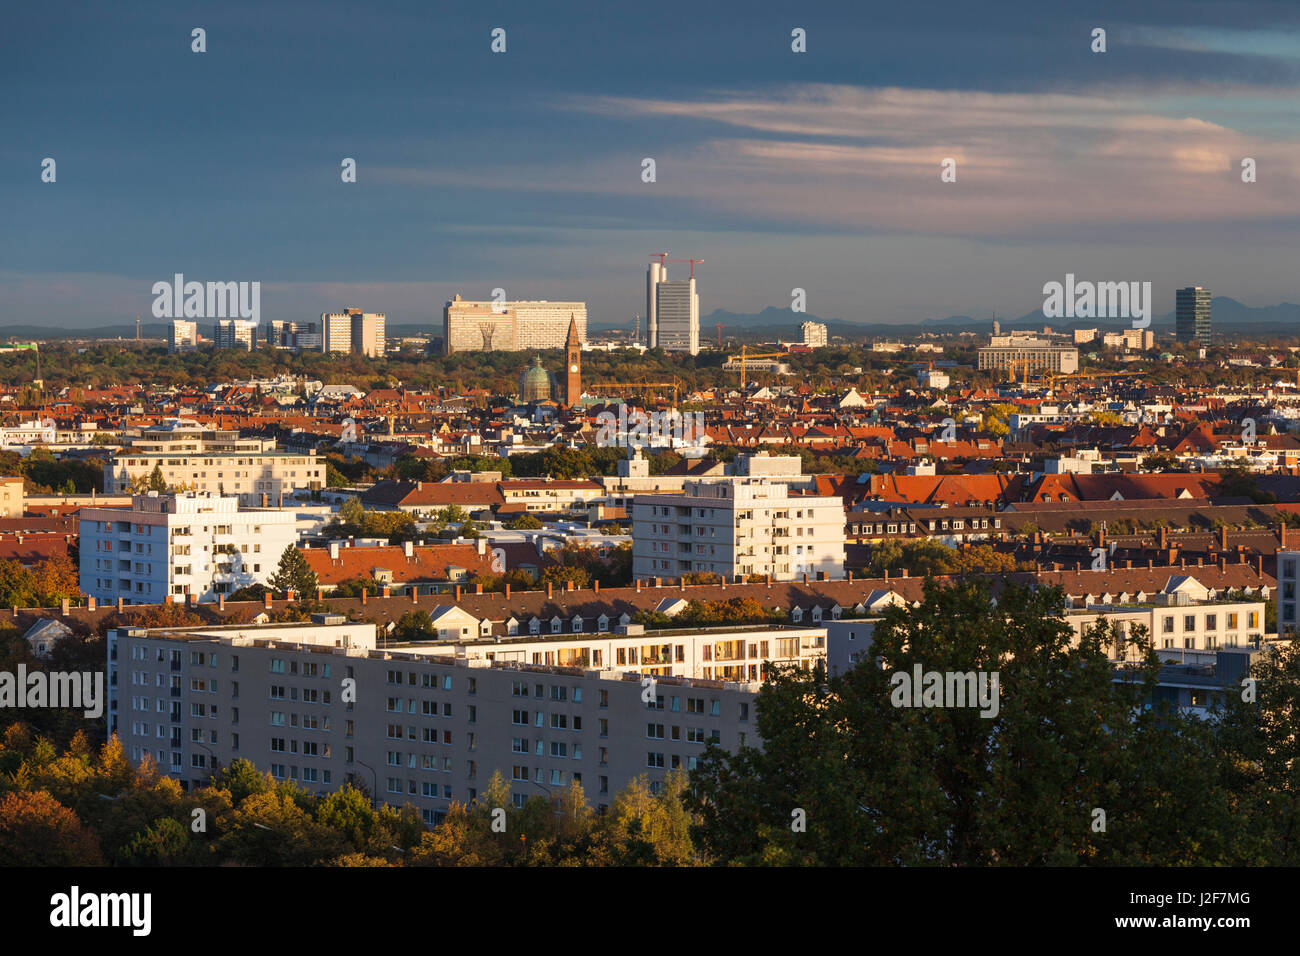 Germany, Bavaria, Munich, Olympic Park, fall city skyline from the Olympiaberg hill - Stock Image